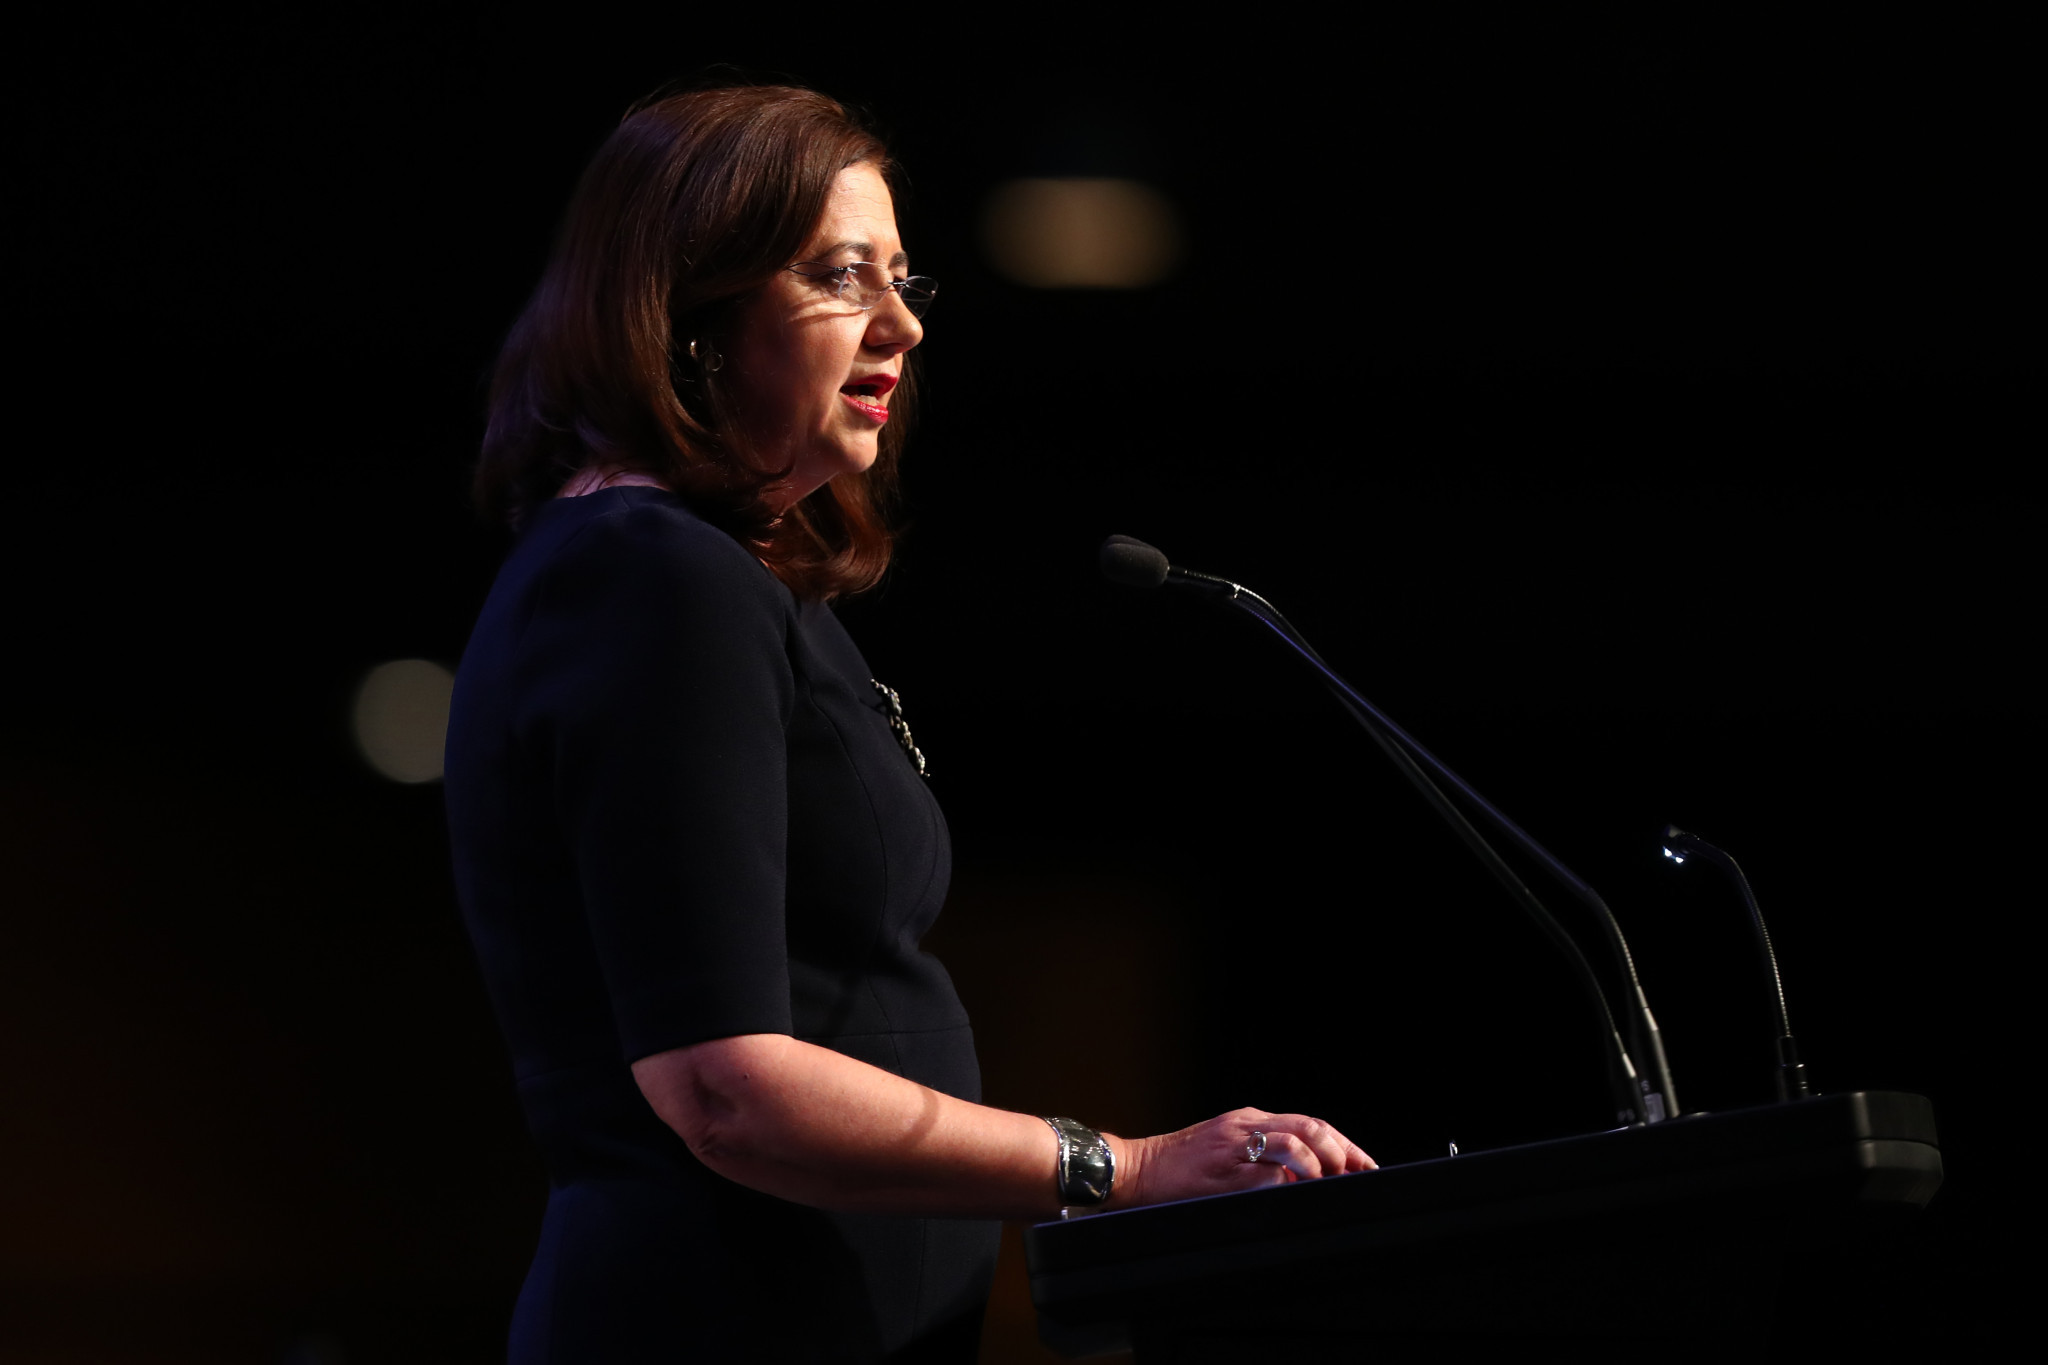 Queensland Premier Annastacia Palaszczuk is set to meet with IOC President Thomas Bach in Lausanne next month to discuss her state's bid for the 2032 Olympic and Paralympic Games ©Getty Images